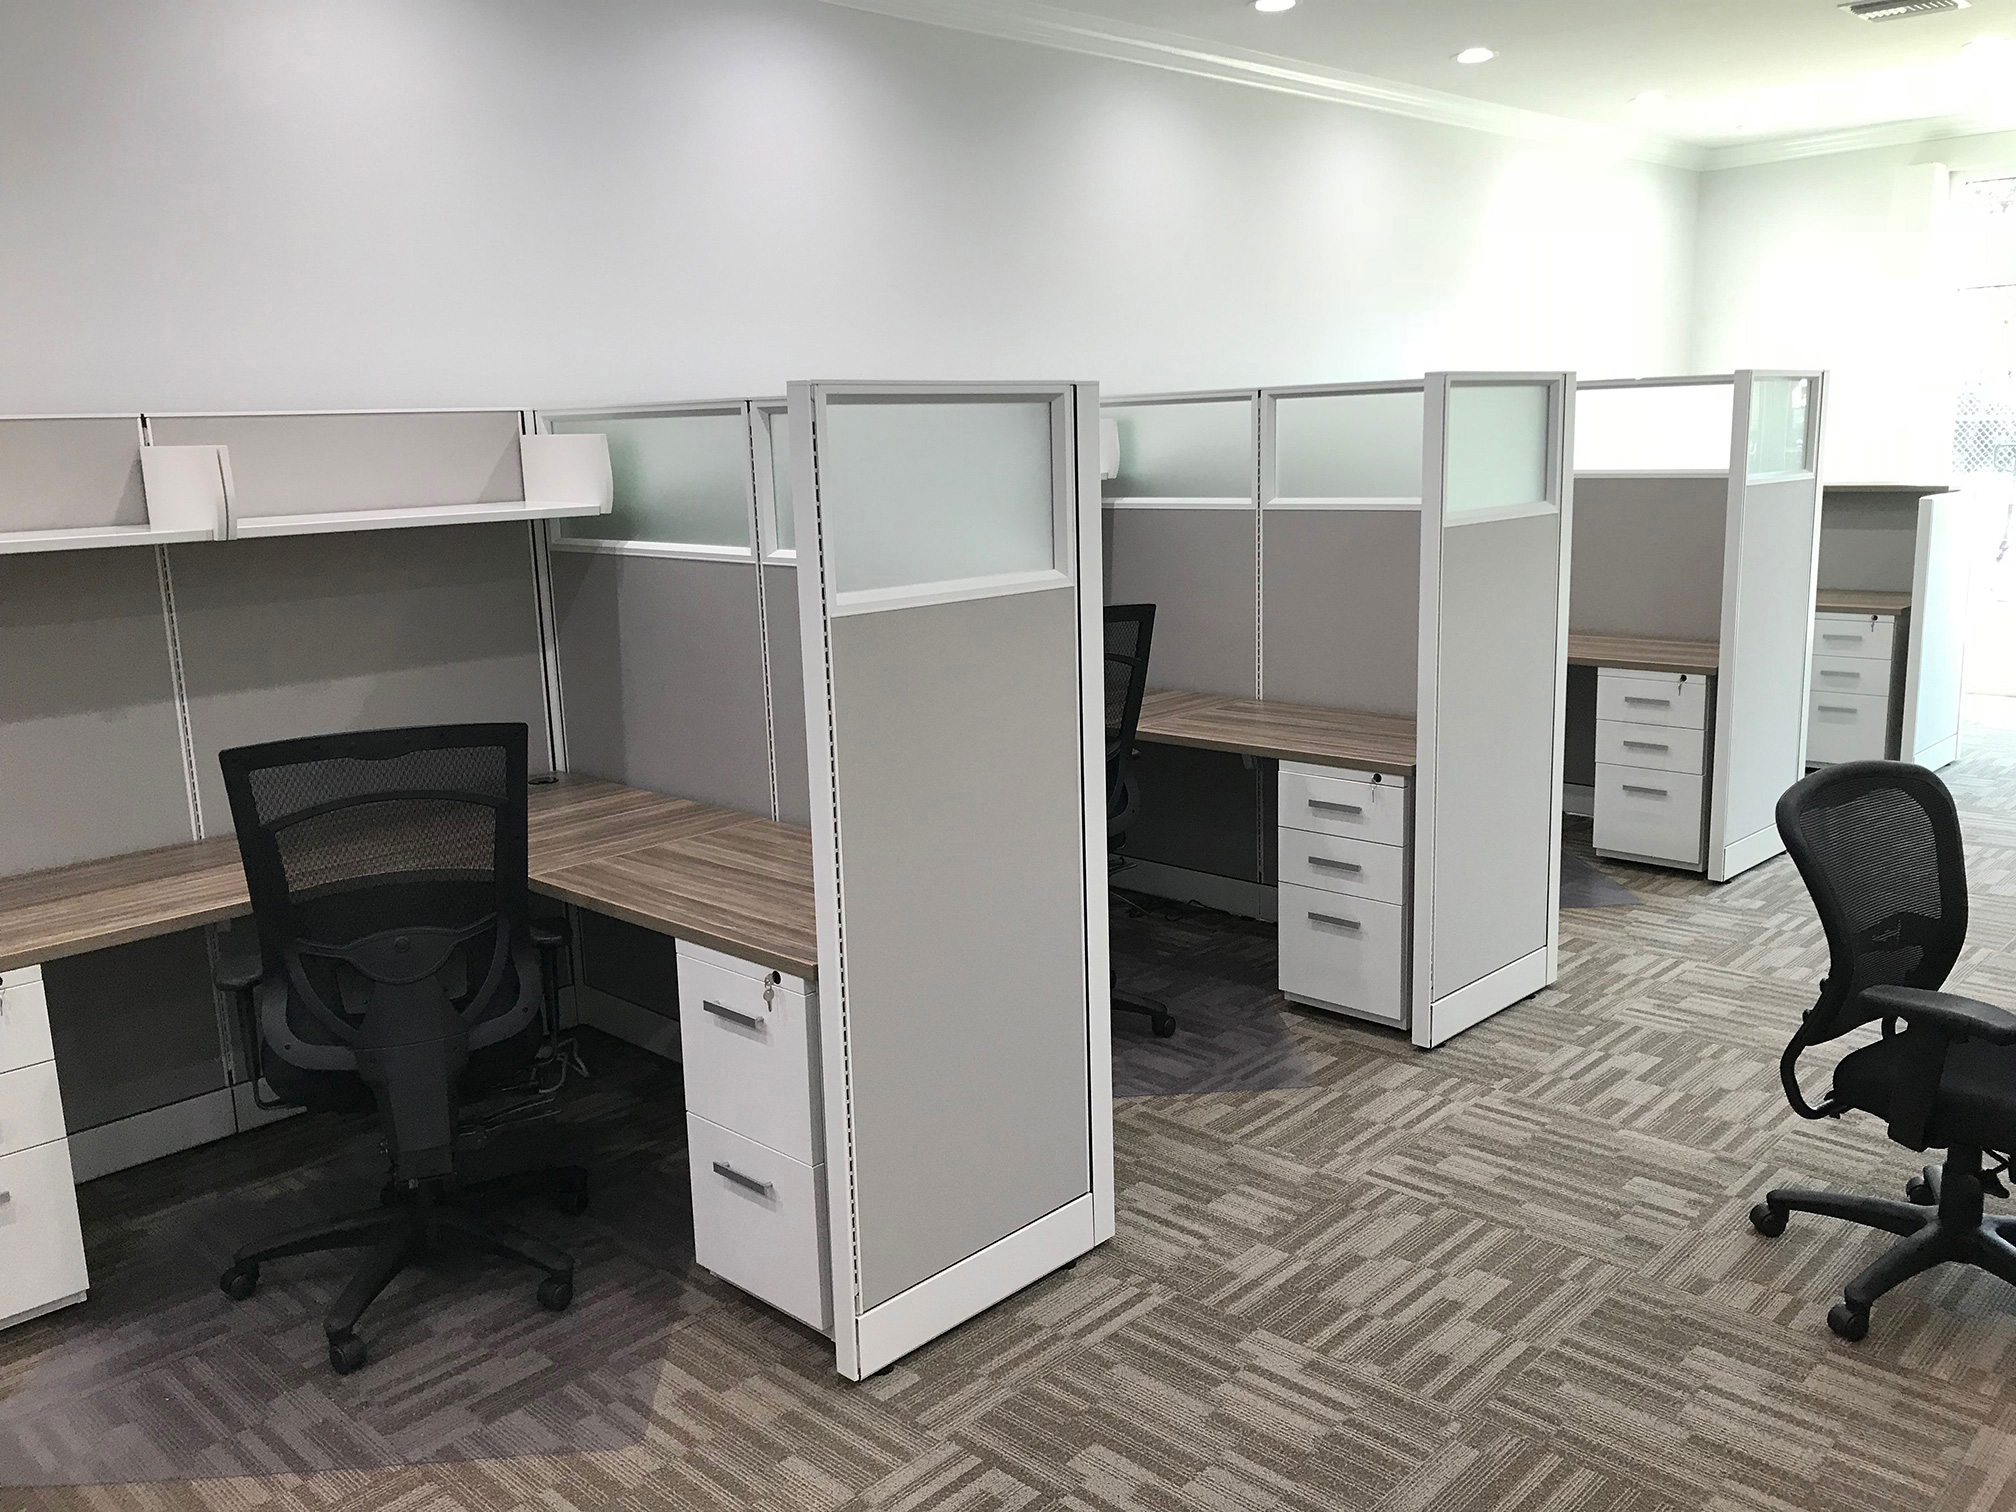 office-cubicles-for-sale-in-coconut-creek-florida-3-1.jpg